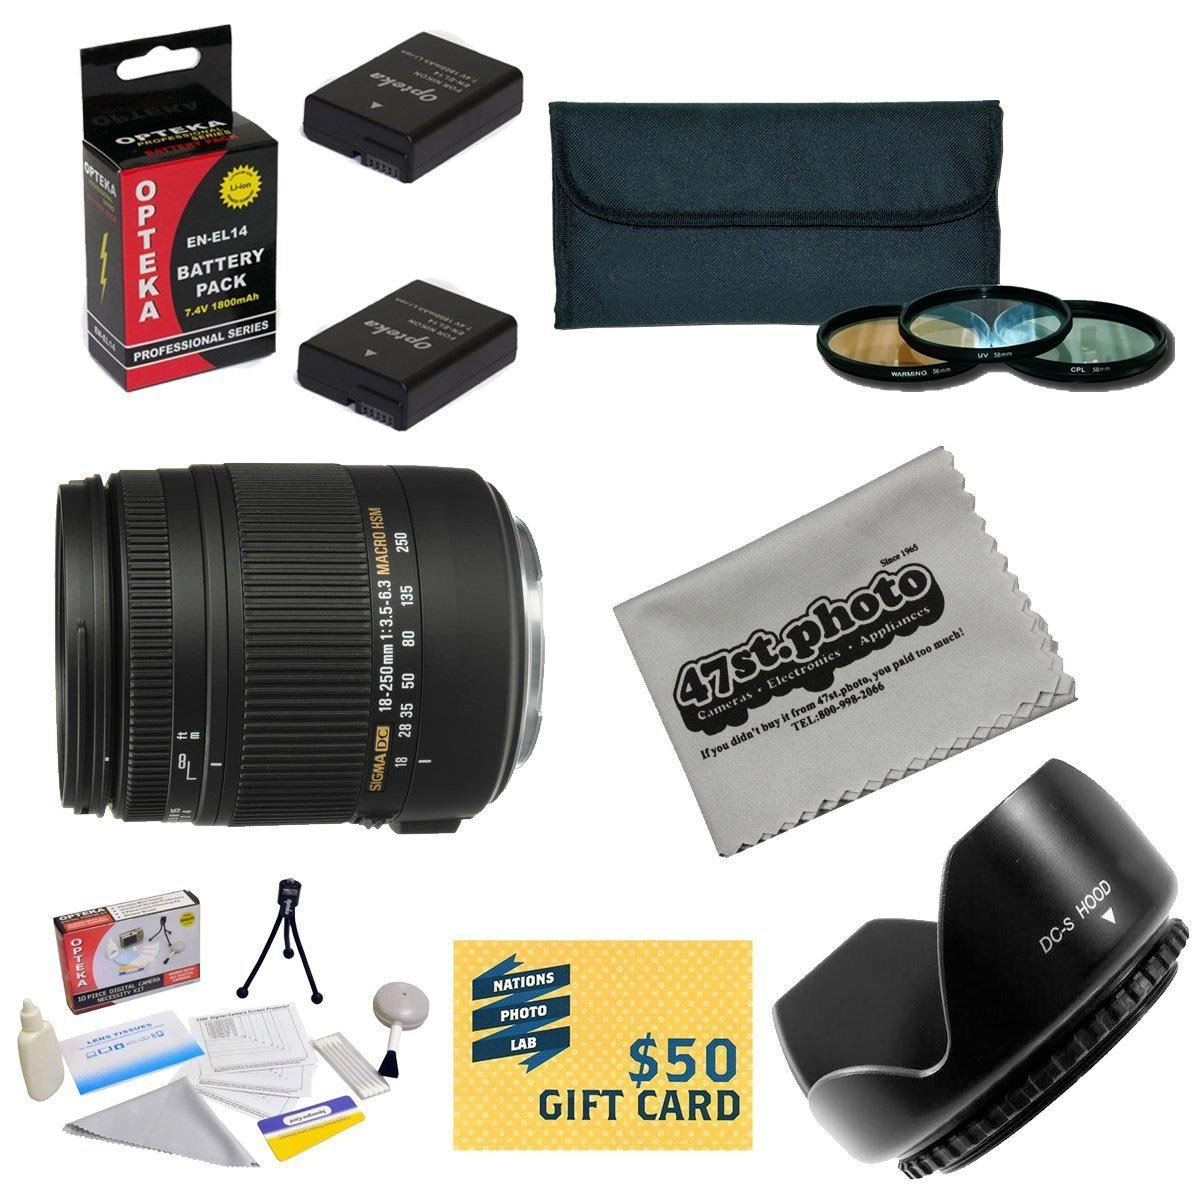 Sigma Super Zoom 18-250mm f 3.5-6.3 DC Macro OS HSM (Optical Stabilizer) 883-306 Lens For the Nikon D3100,... by Sigma